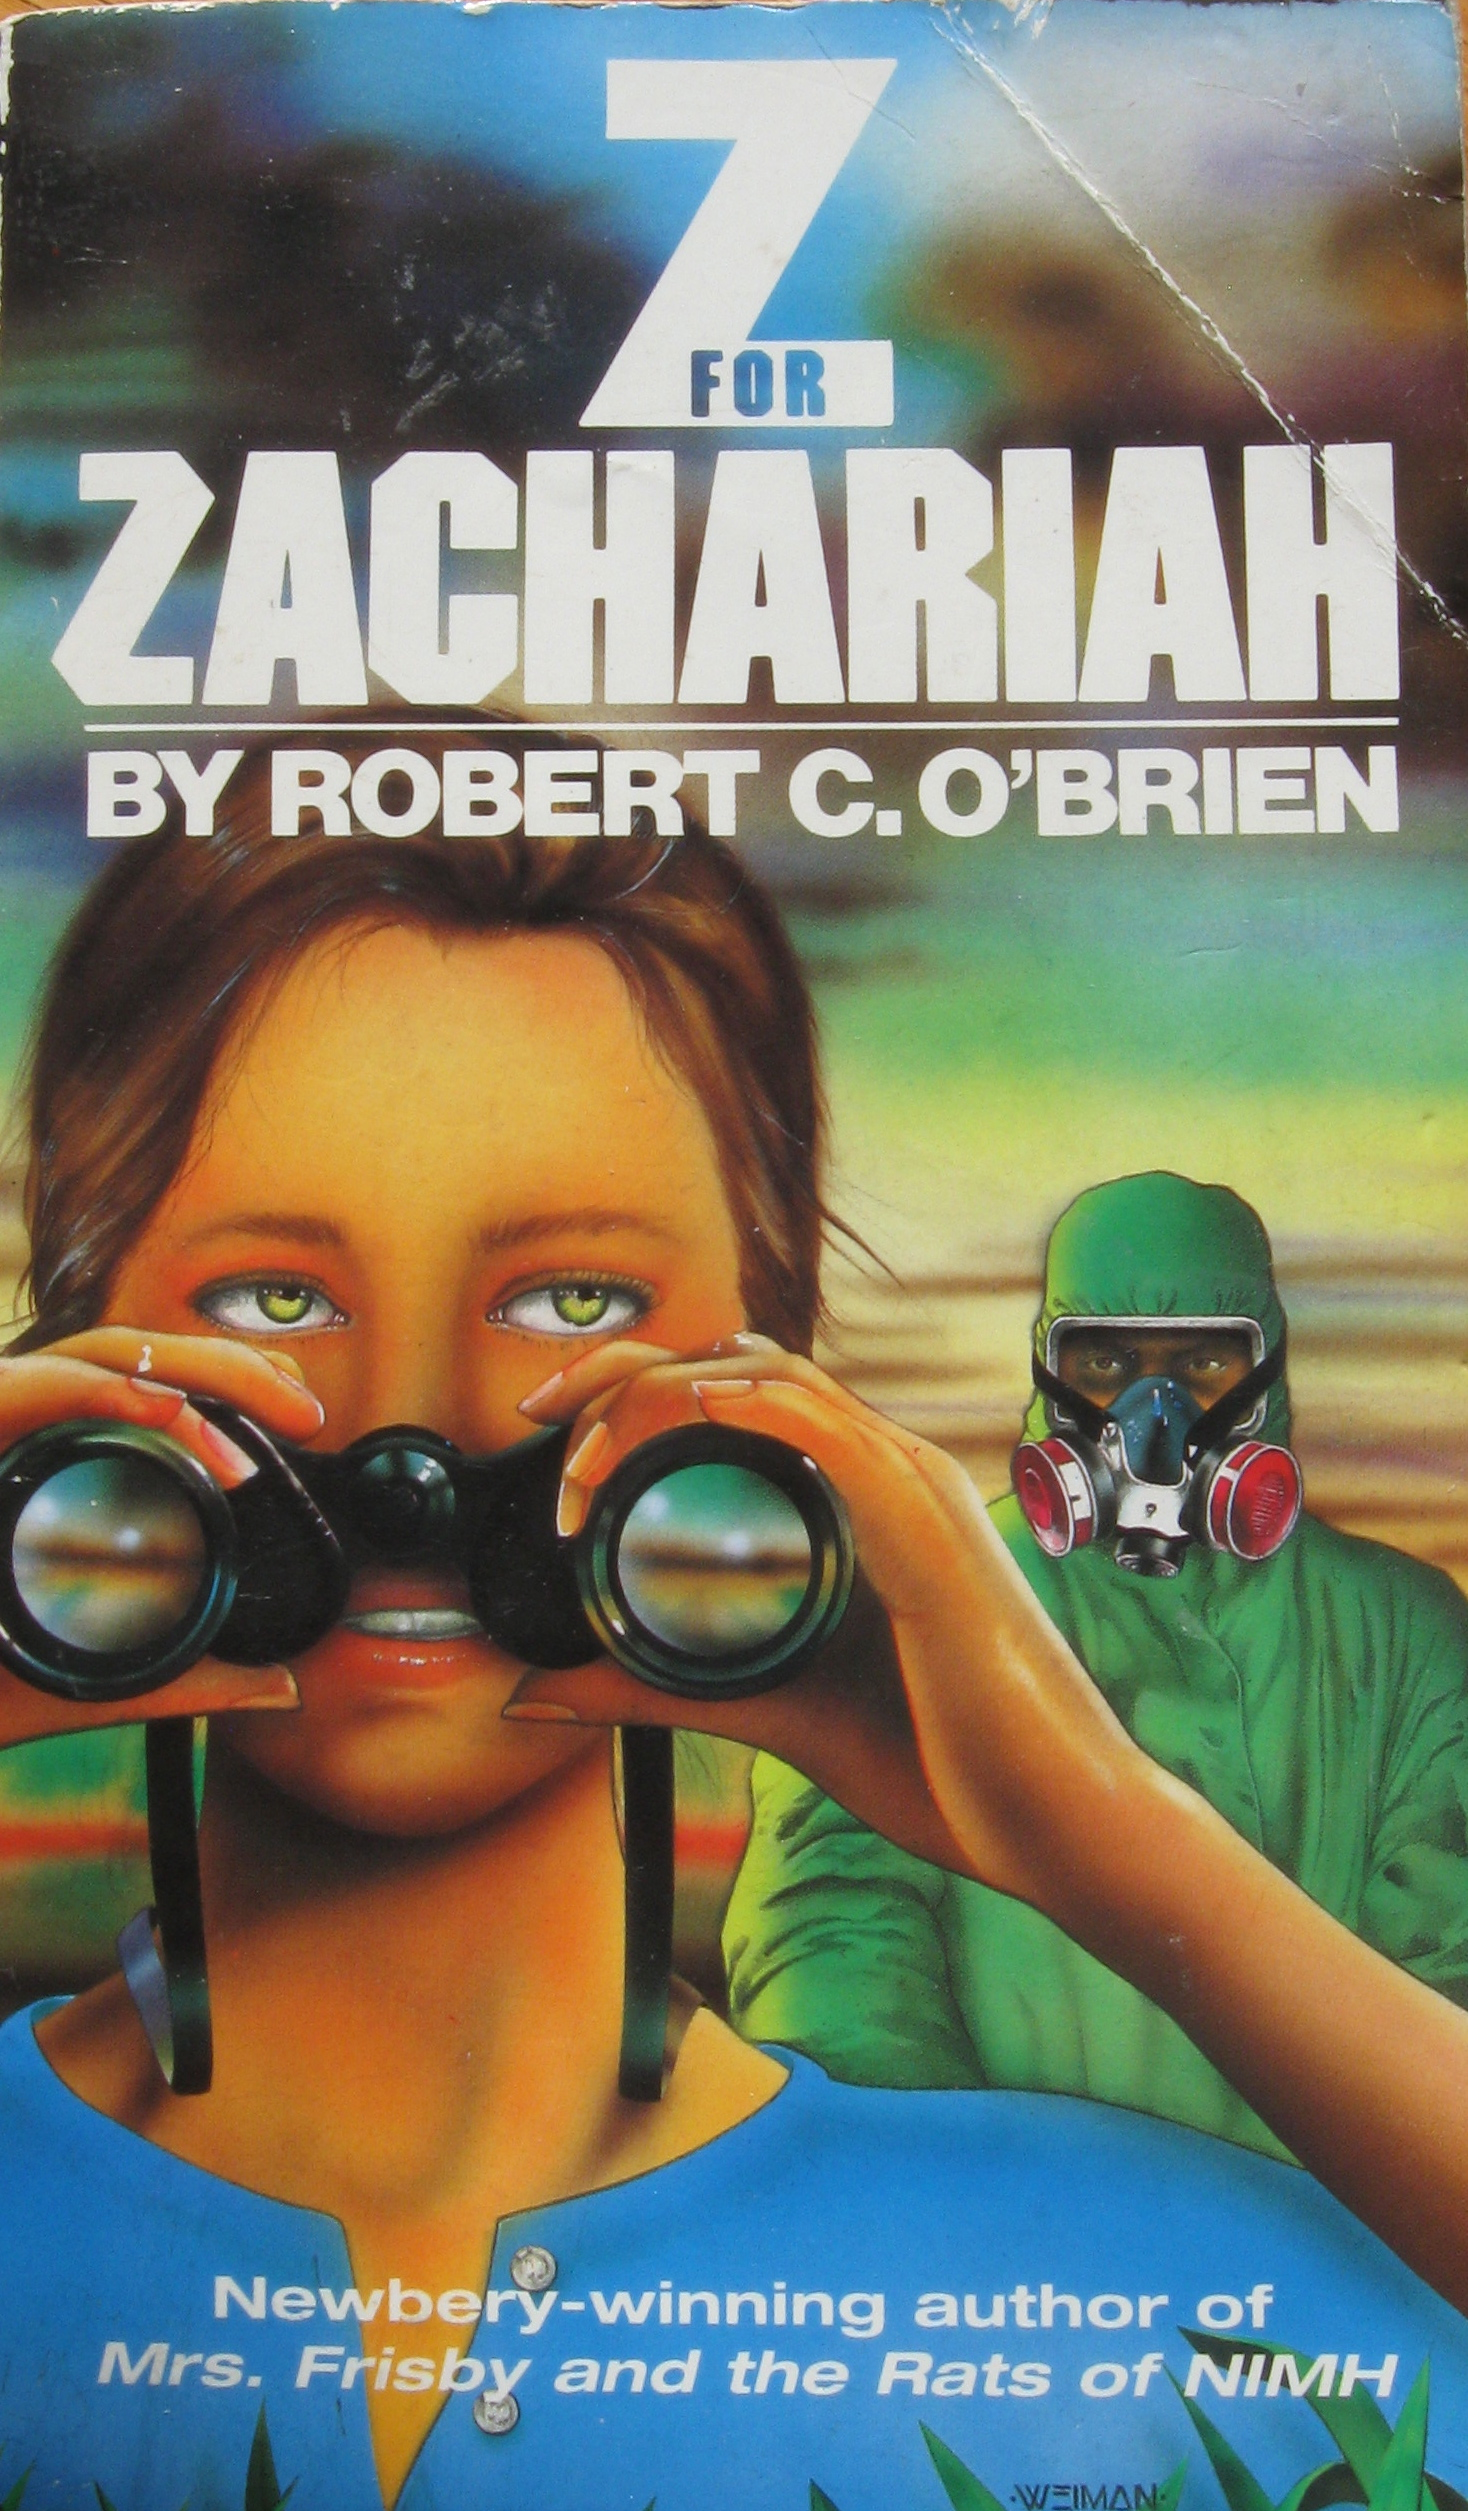 Monday Book Review: Z for Zachariah by Robert C. O'Brien   A.J. ...